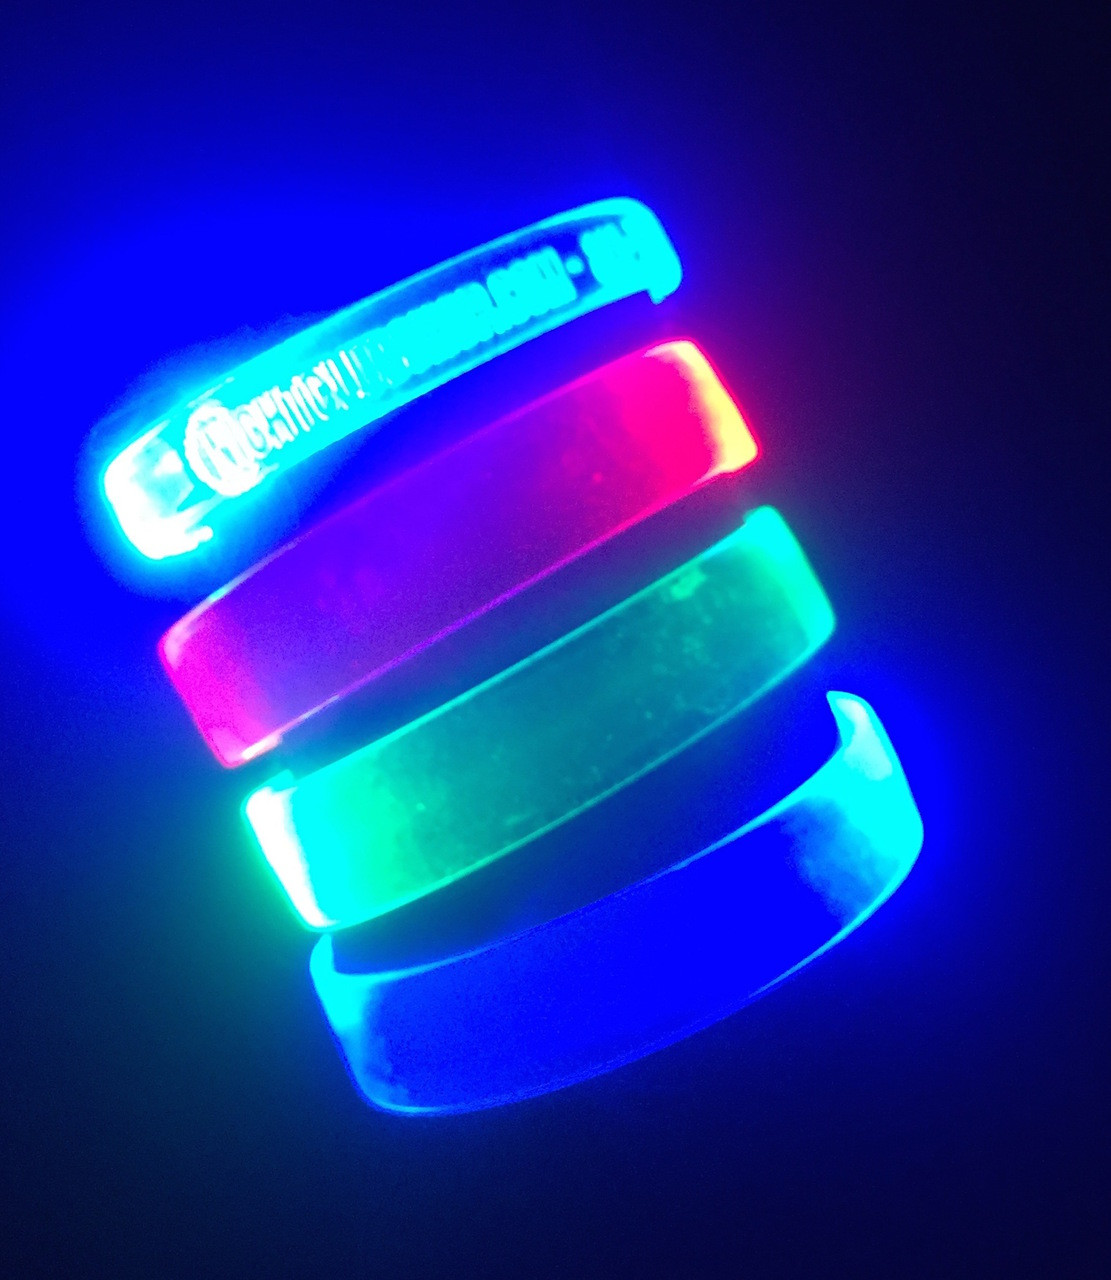 LED_Light up_Glow_Neon_Wrist_band-wristband-LED Bracelet-Bracelet-Blank